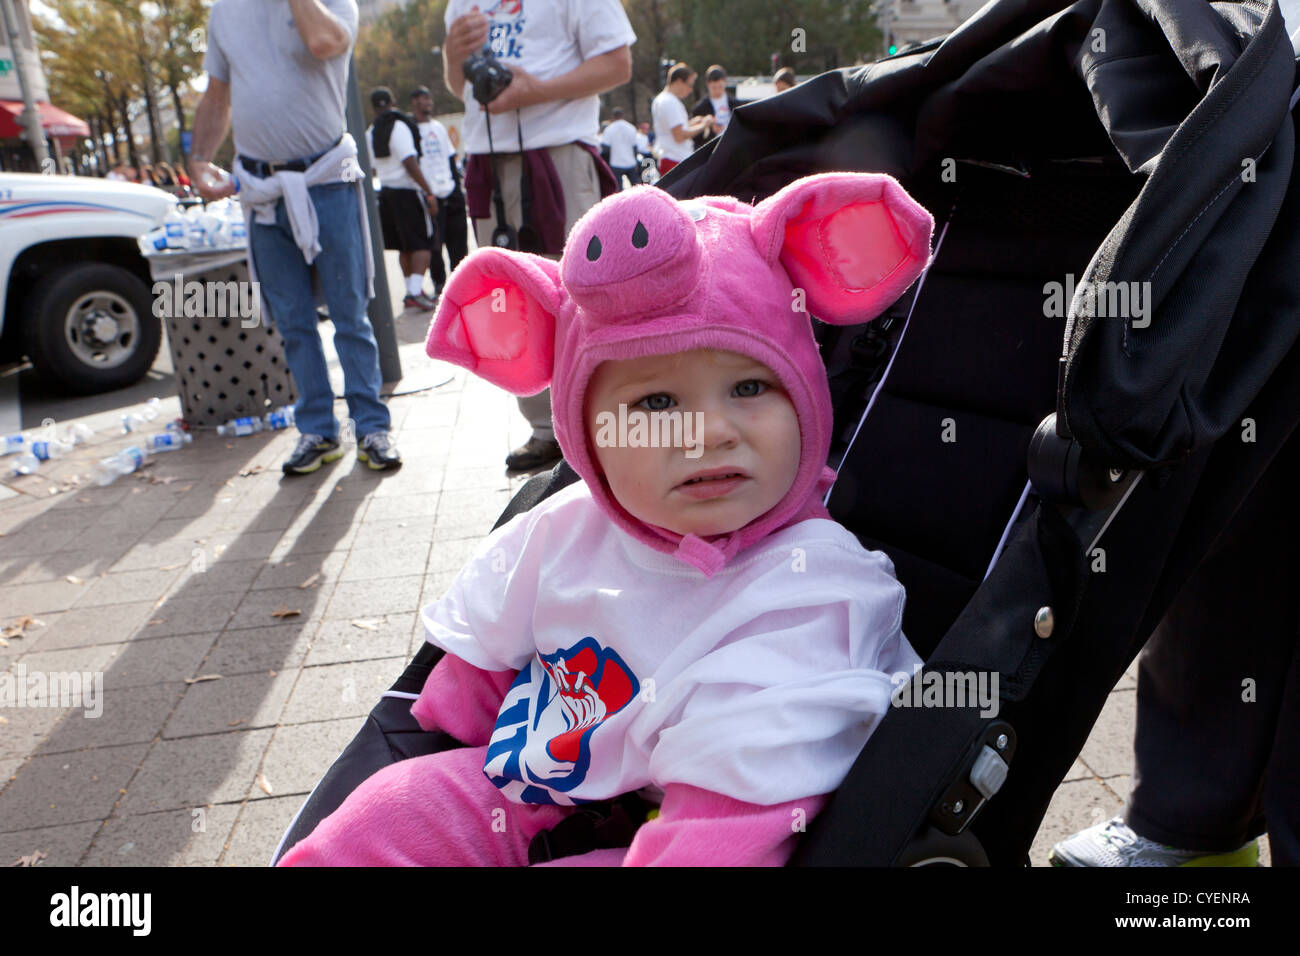 Caucasian baby dressed in piggy costume sitting in stroller - Stock Image